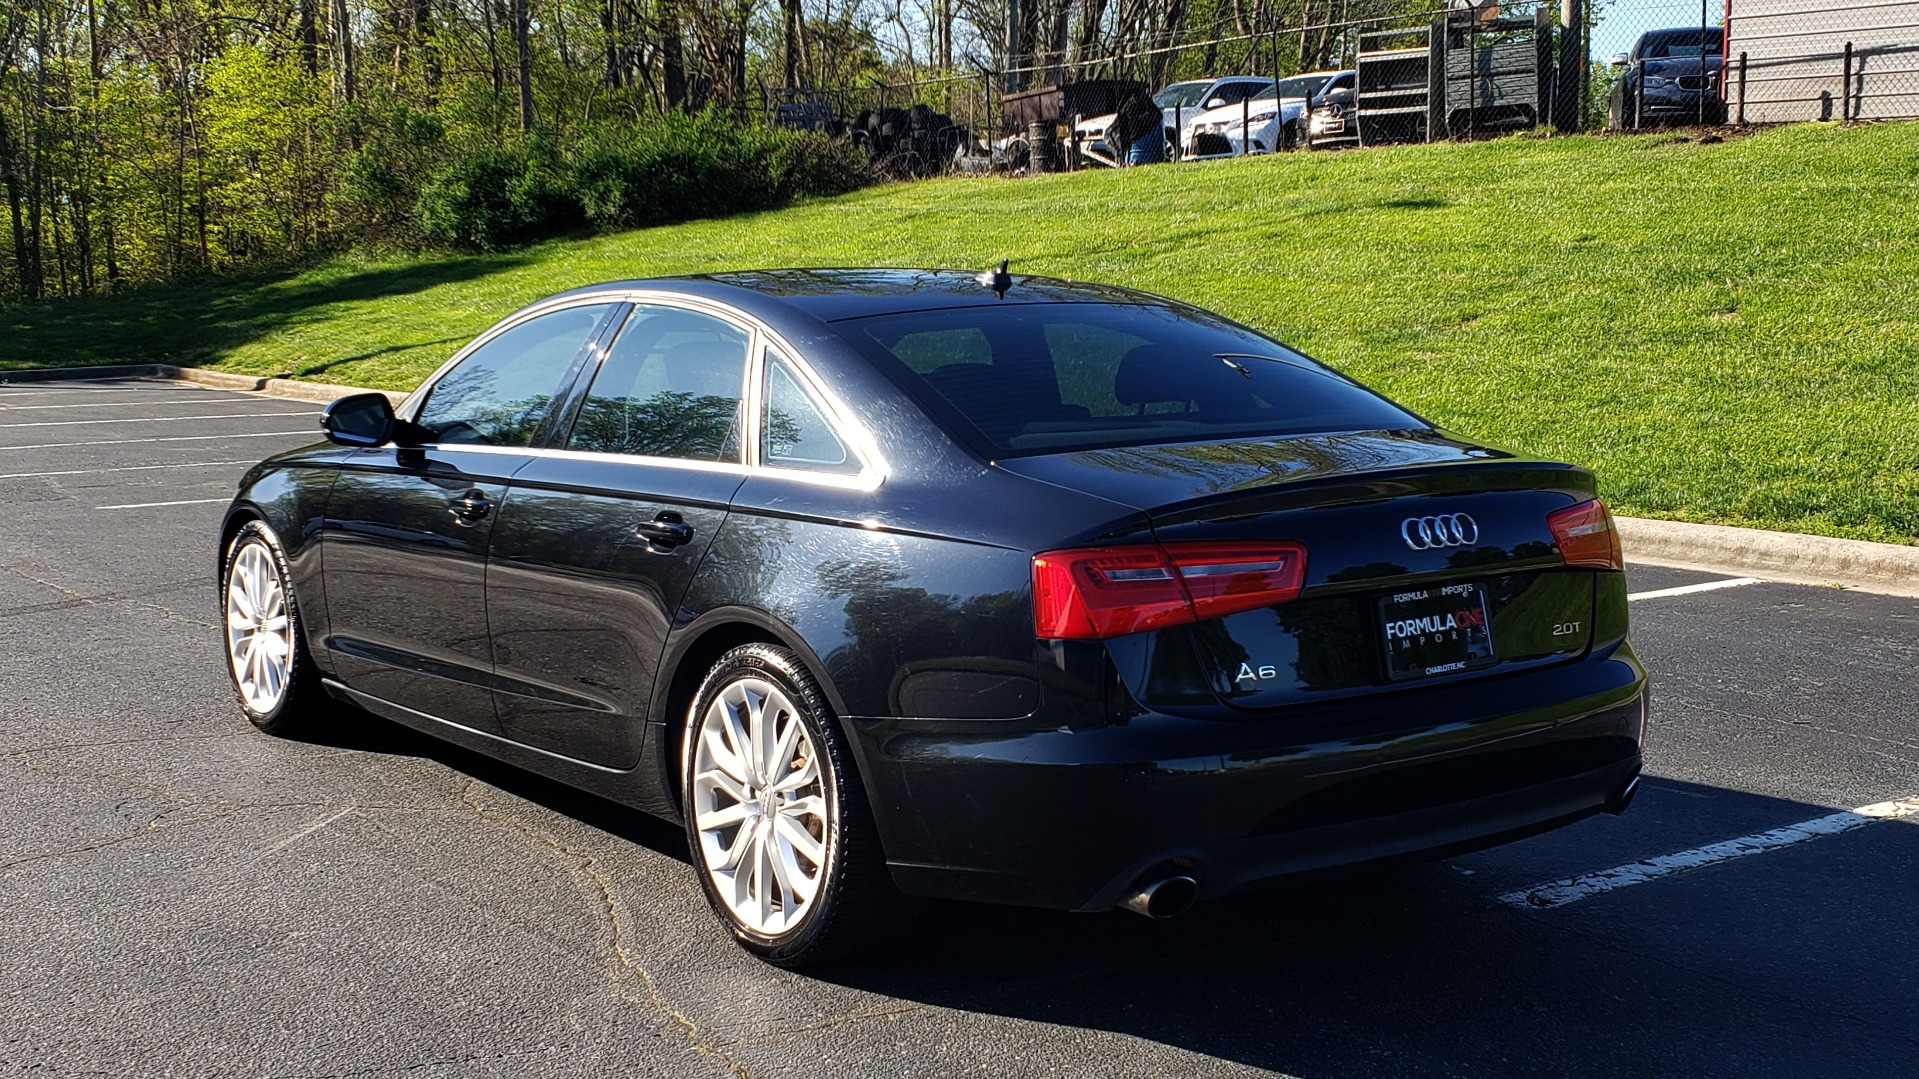 Used 2012 Audi A6 2.0T PREMIUM PLUS / NAV / SNRF / CVT TRANS / REARVIEW for sale Sold at Formula Imports in Charlotte NC 28227 3